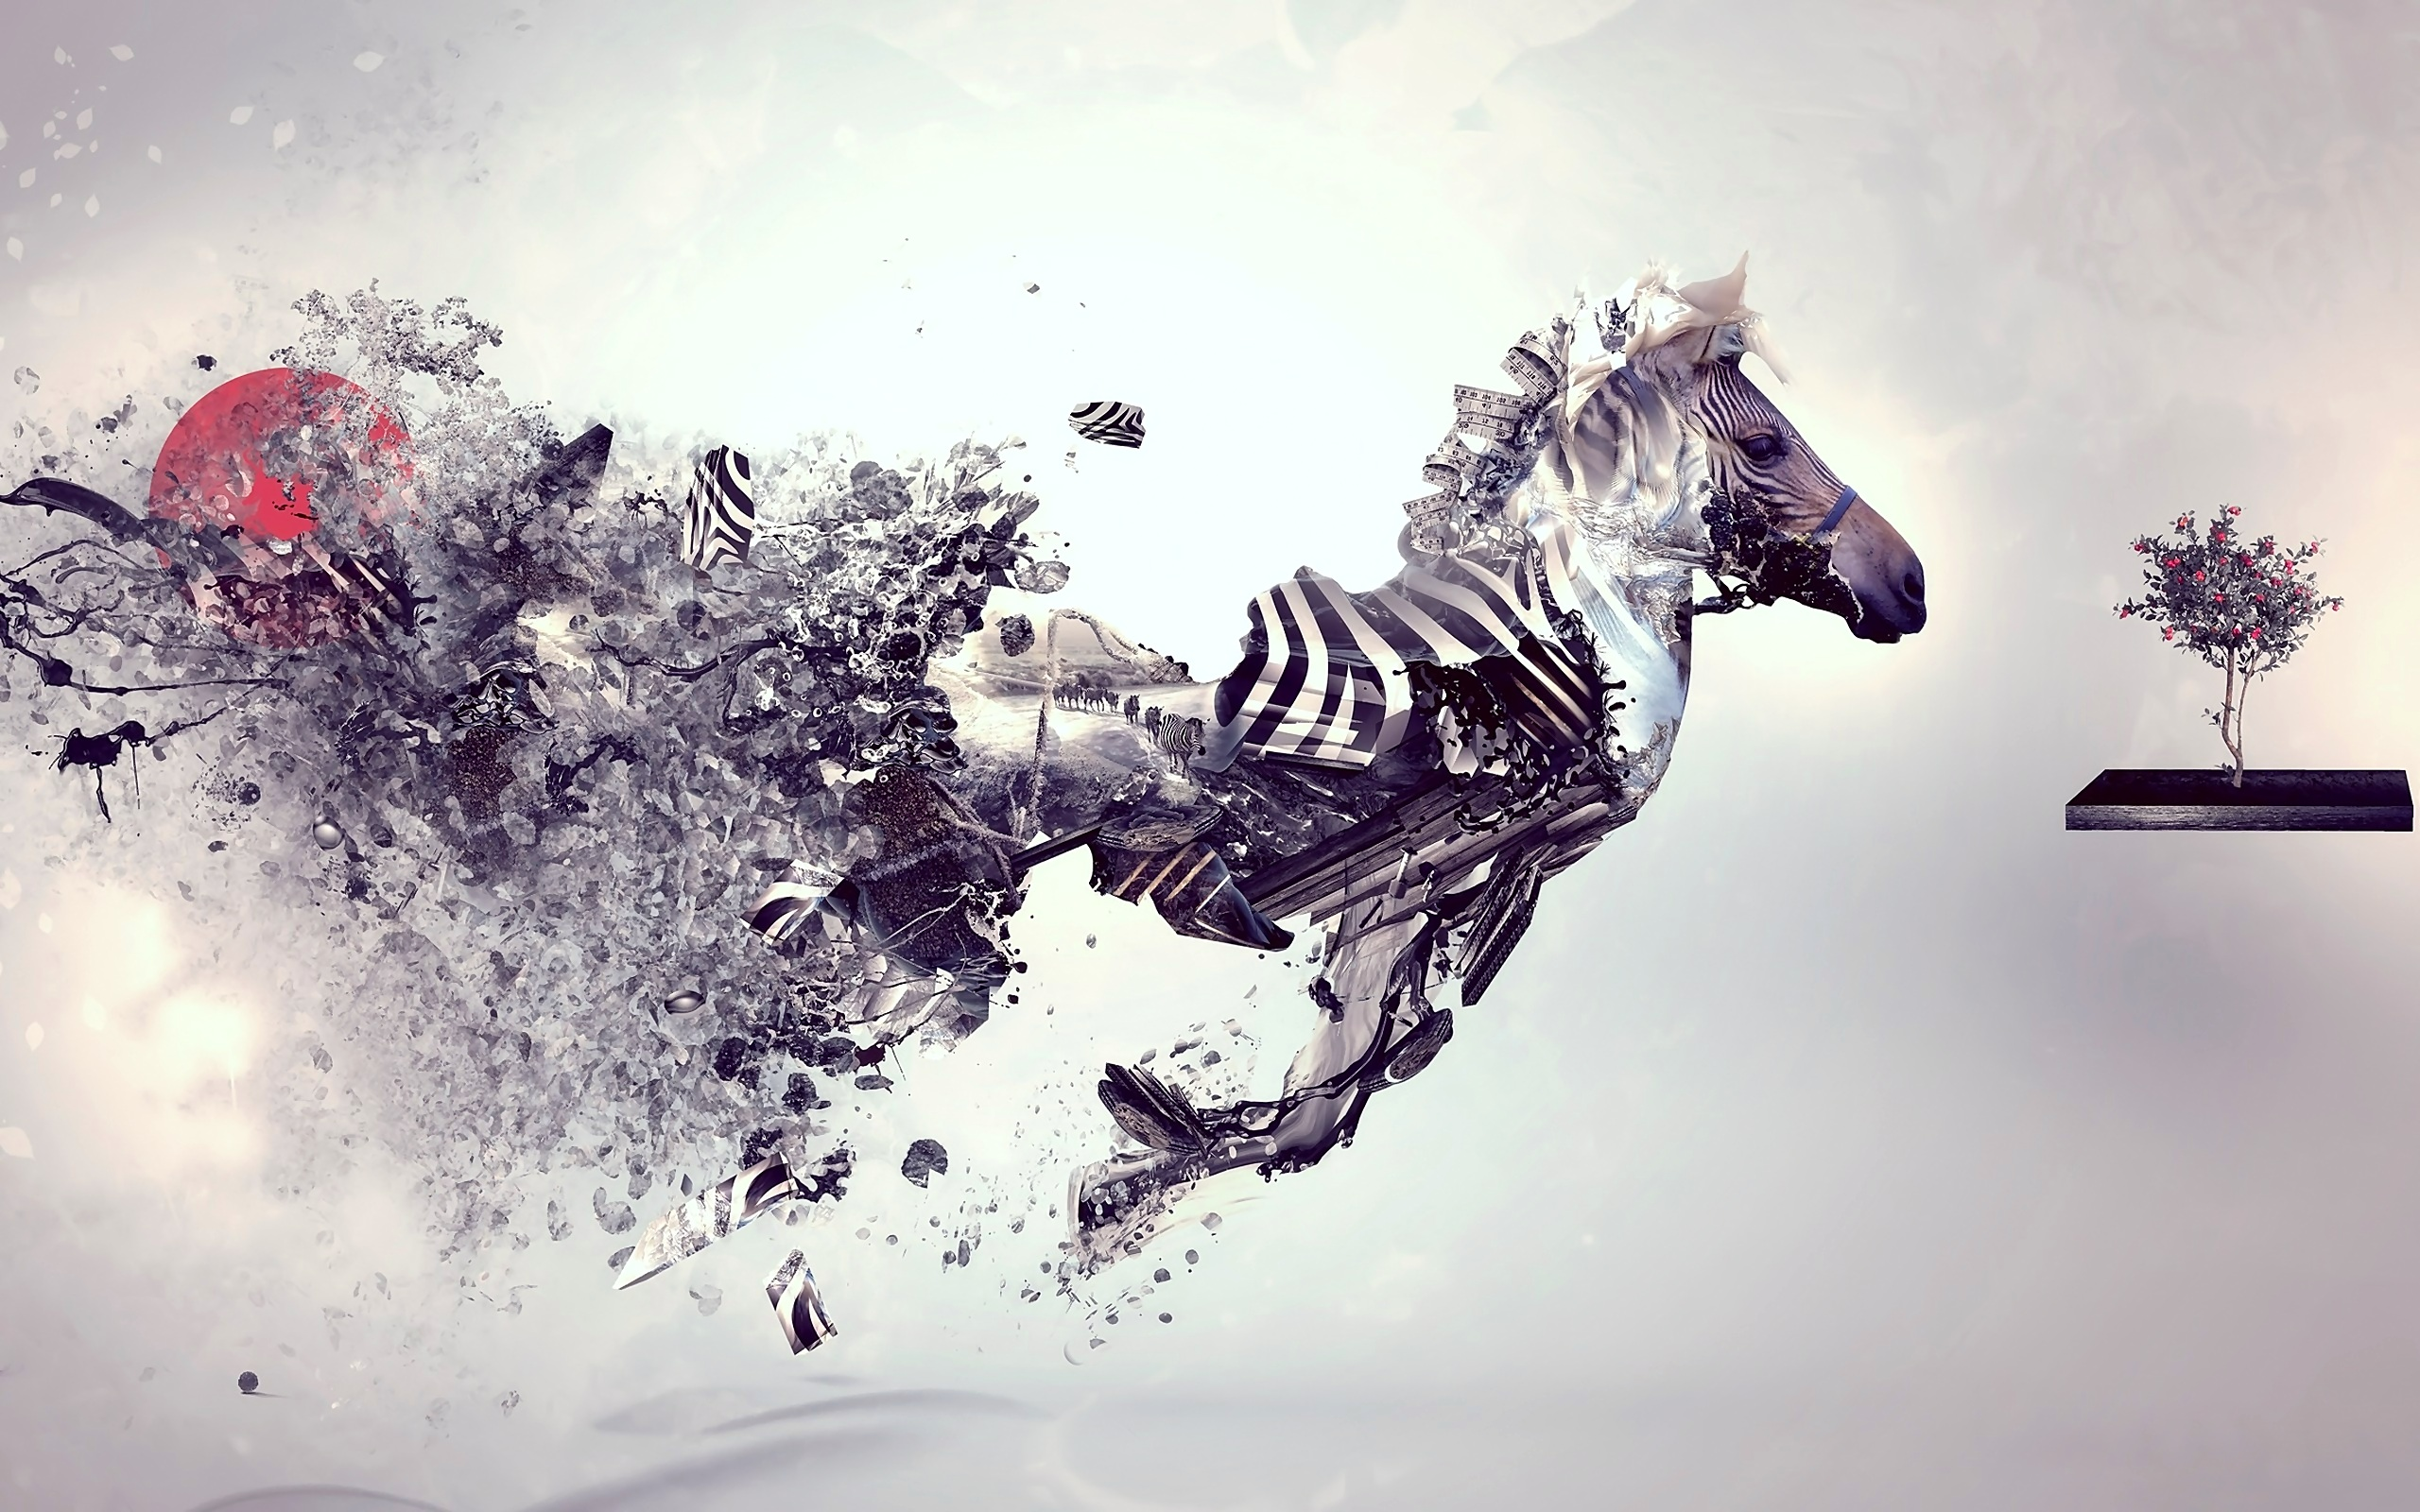 Amazing Wallpaper Horse Abstract - art-abstract  Photograph_80713.jpg